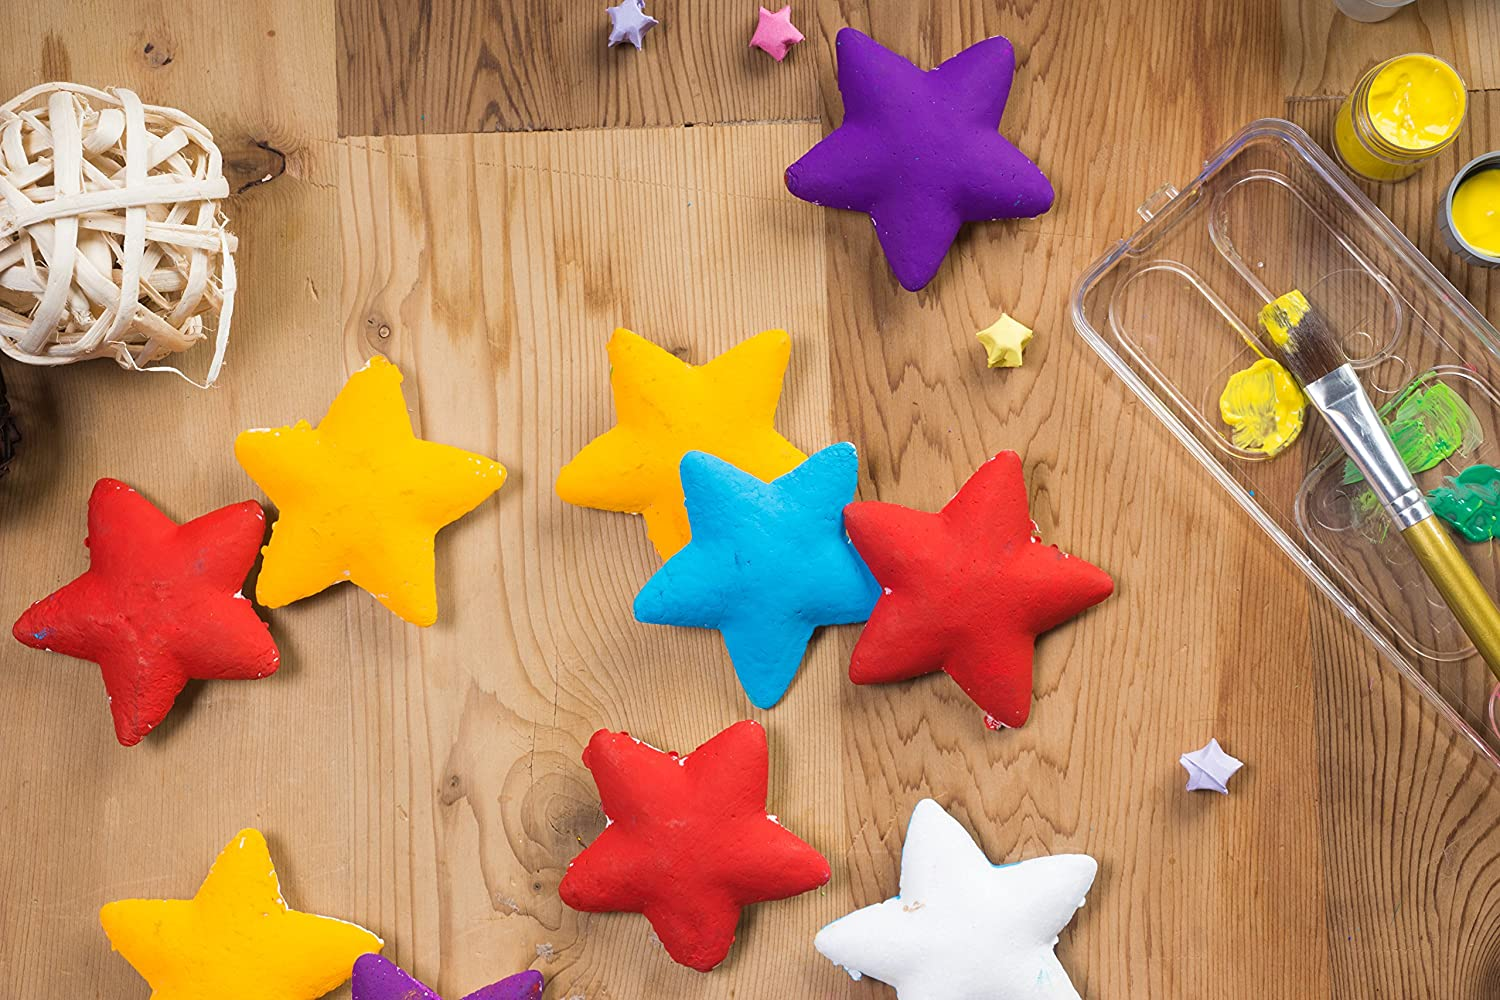 Makes DIY Ornaments and Decorations White 36-Piece Star-Shaped Polystyrene Foam for Arts and Craft Use 1.8 x 0.8 x 1.8 inches Craft Foam Stars